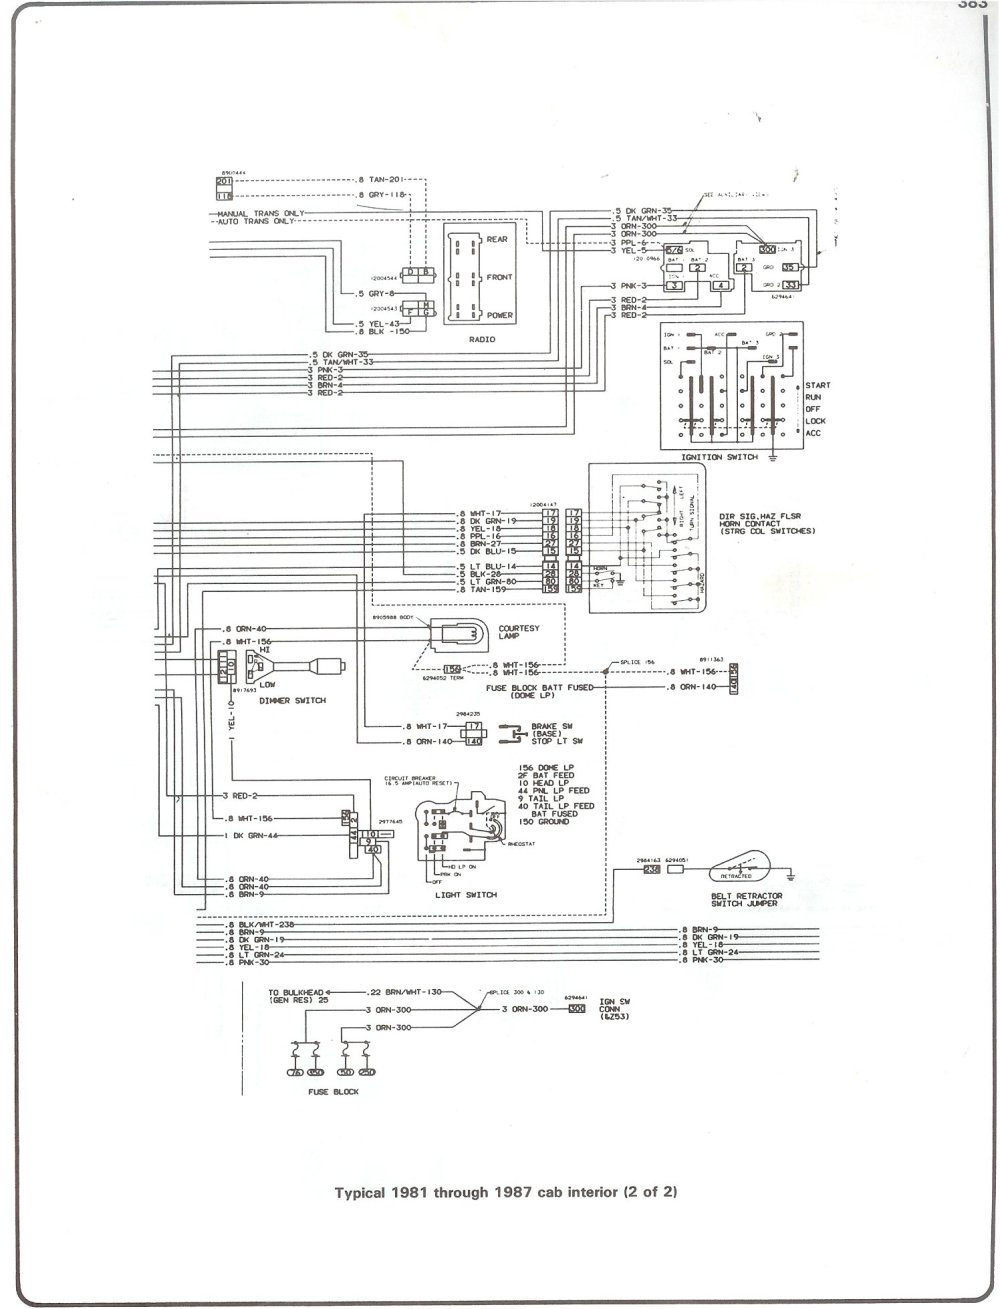 medium resolution of complete 73 87 wiring diagrams81 87 cab interior page 2